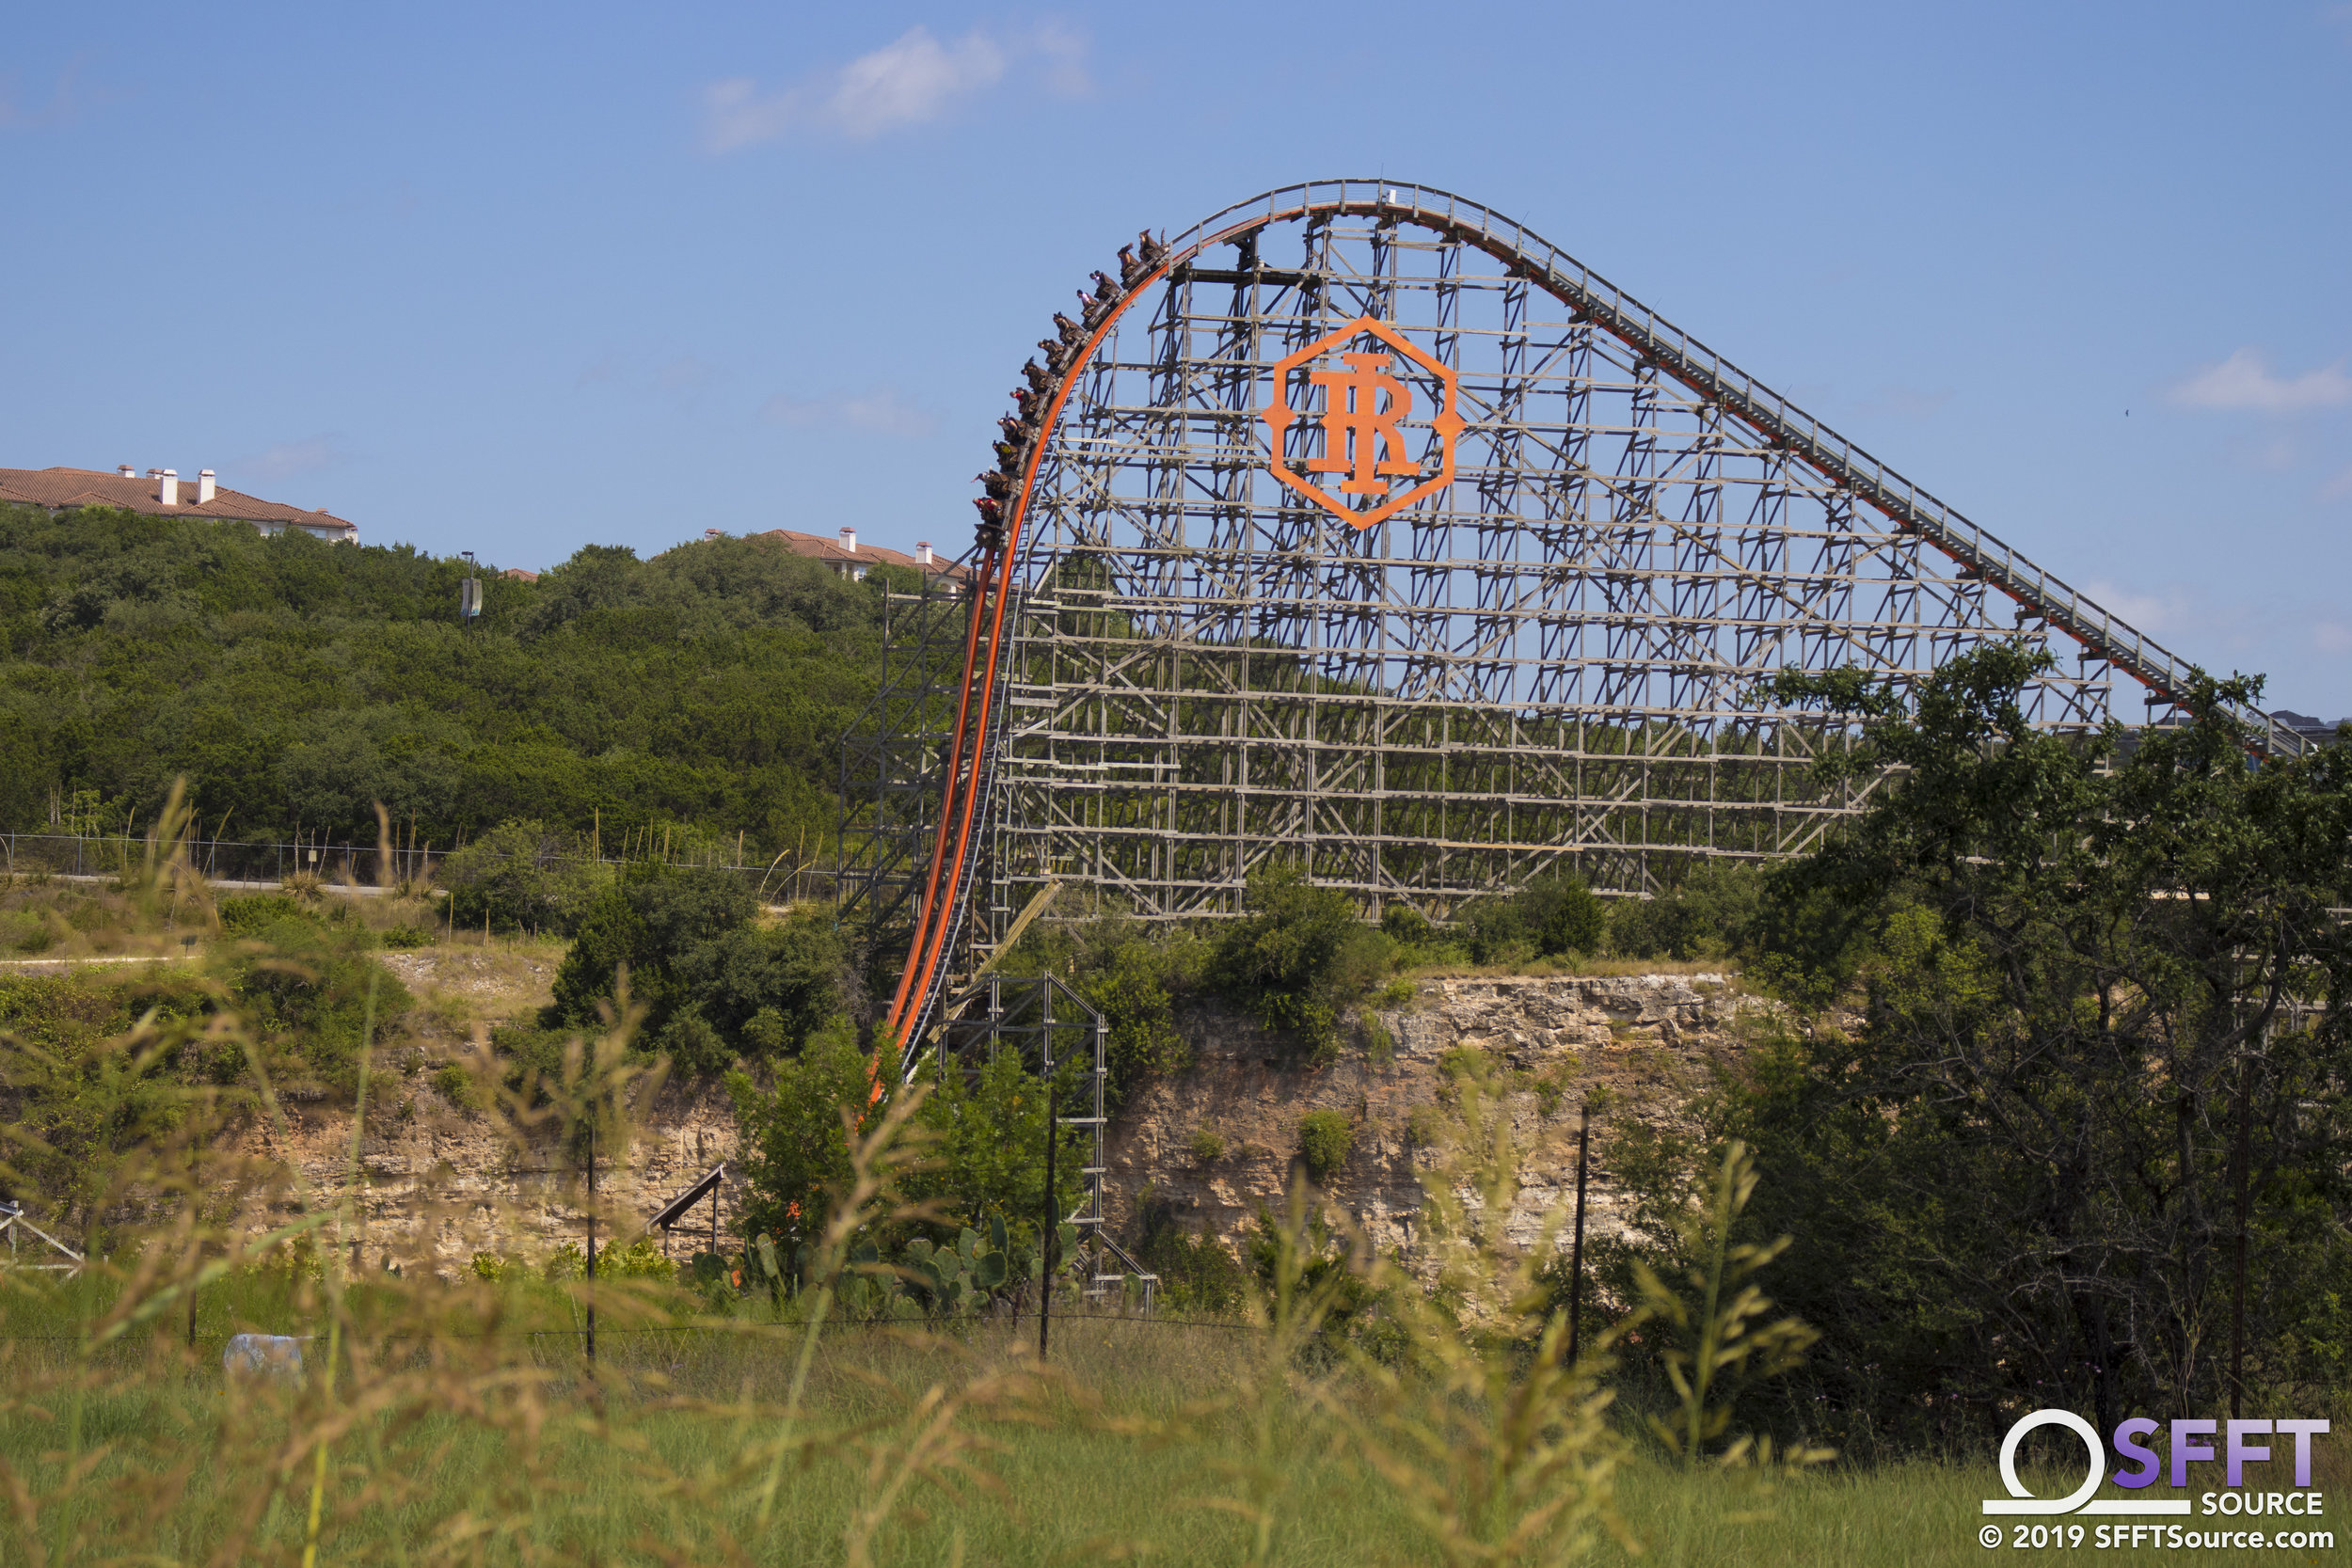 Iron Rattler as seen atop the park's quarry wall.